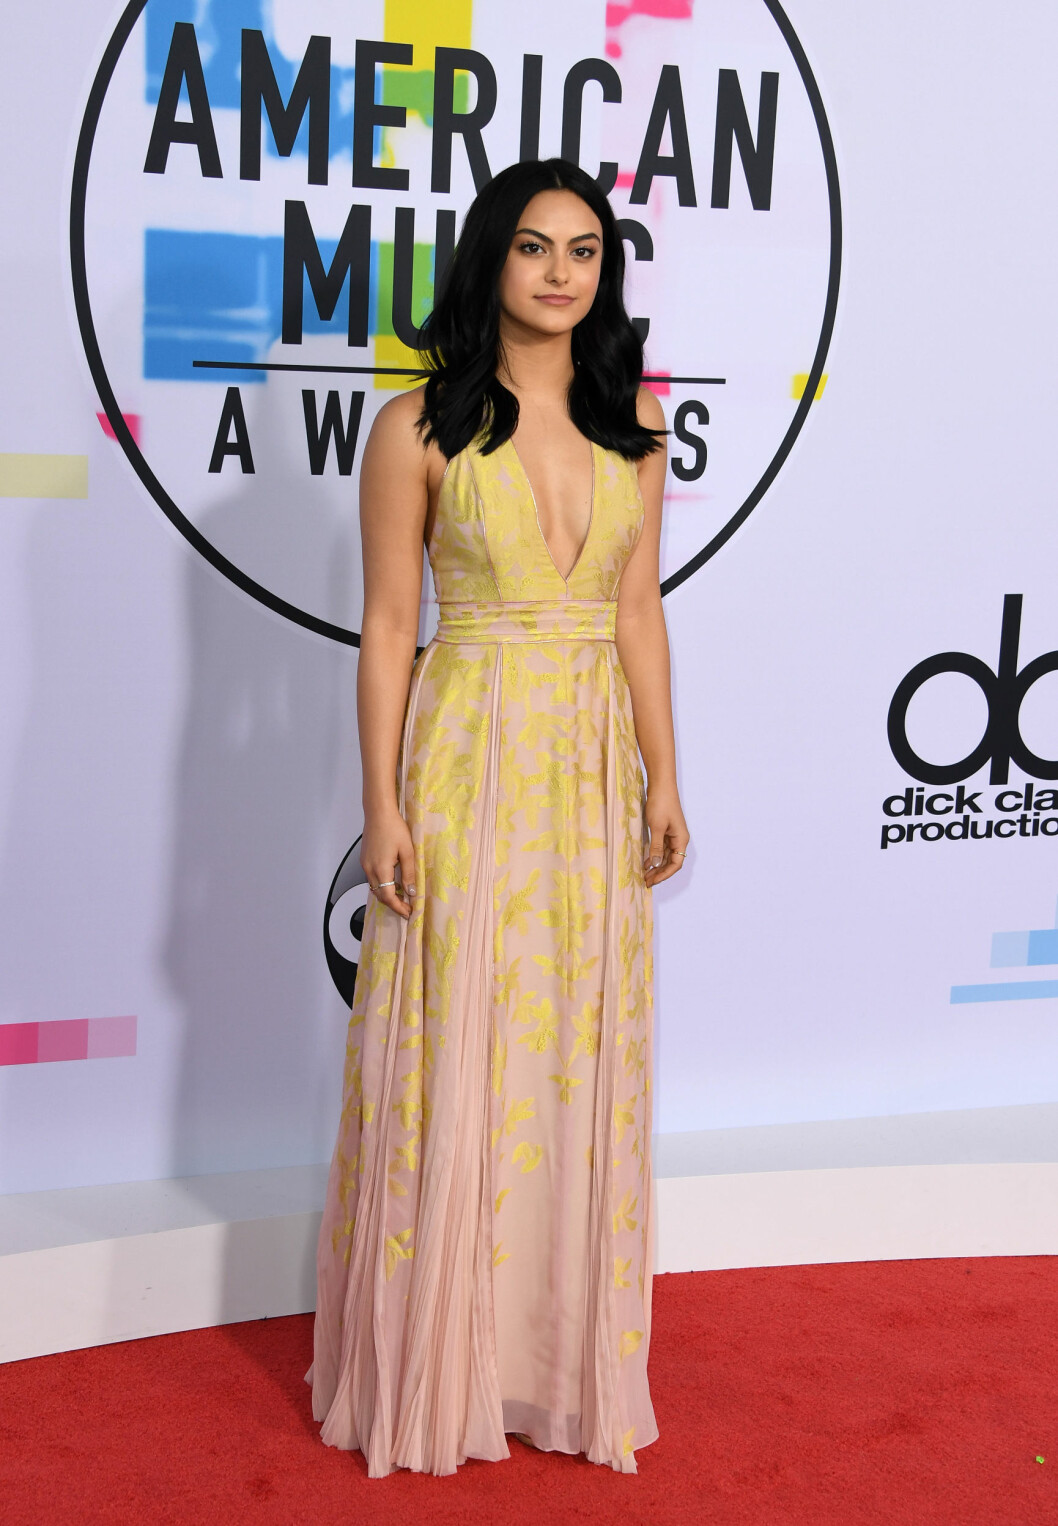 AMERICAN MUSIC AWARDS: Camila Mendes